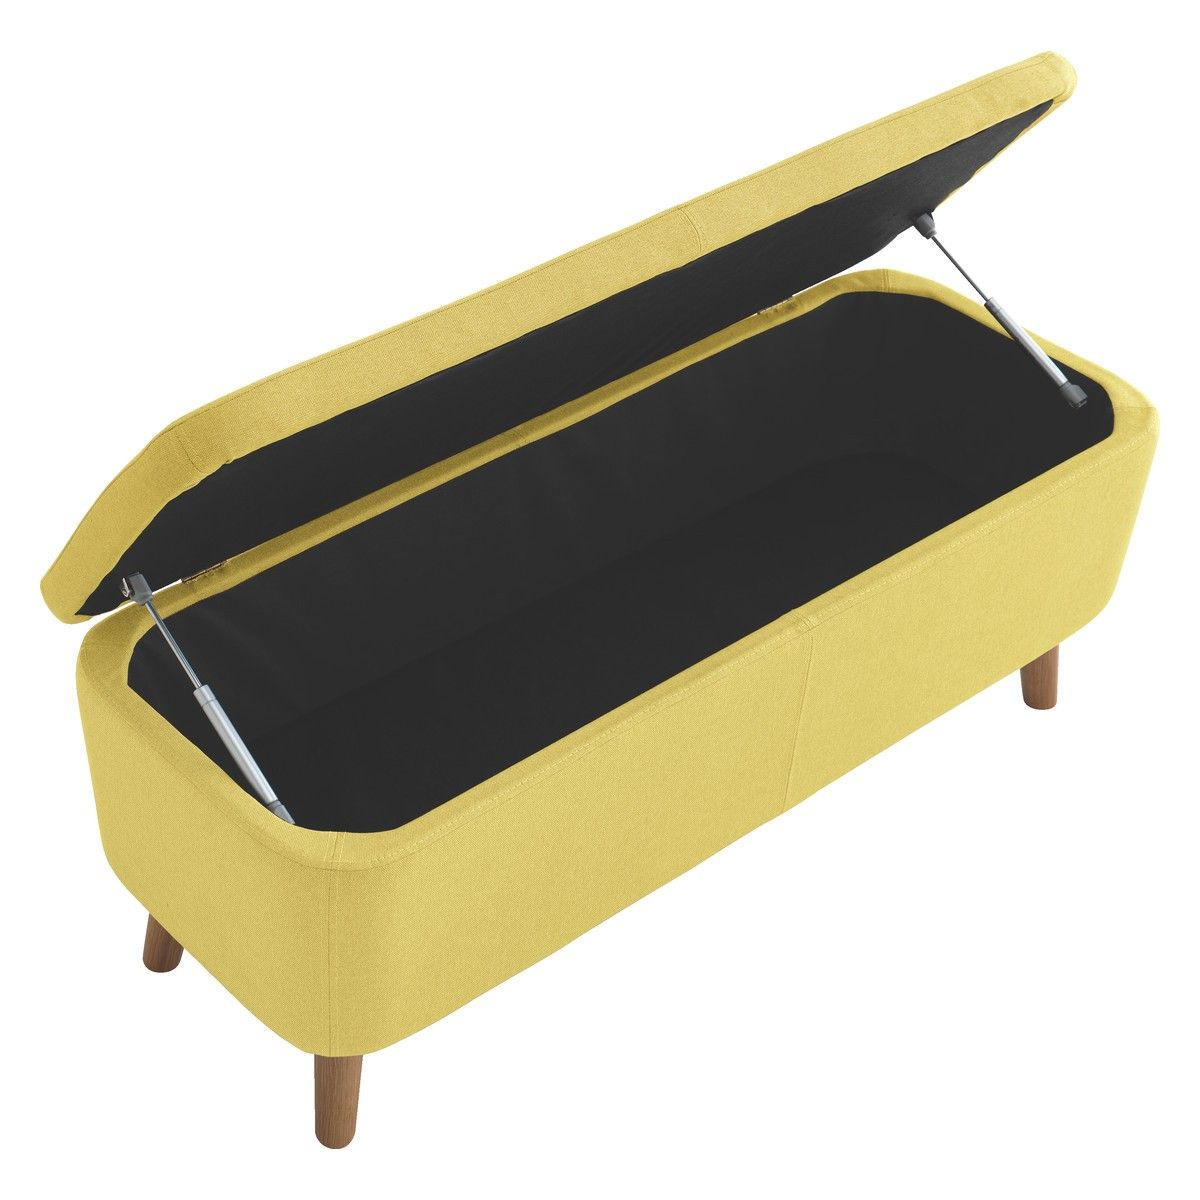 Terrific Jacobs Saffron Yellow Upholstered Storage Bench Bedroom In Gmtry Best Dining Table And Chair Ideas Images Gmtryco